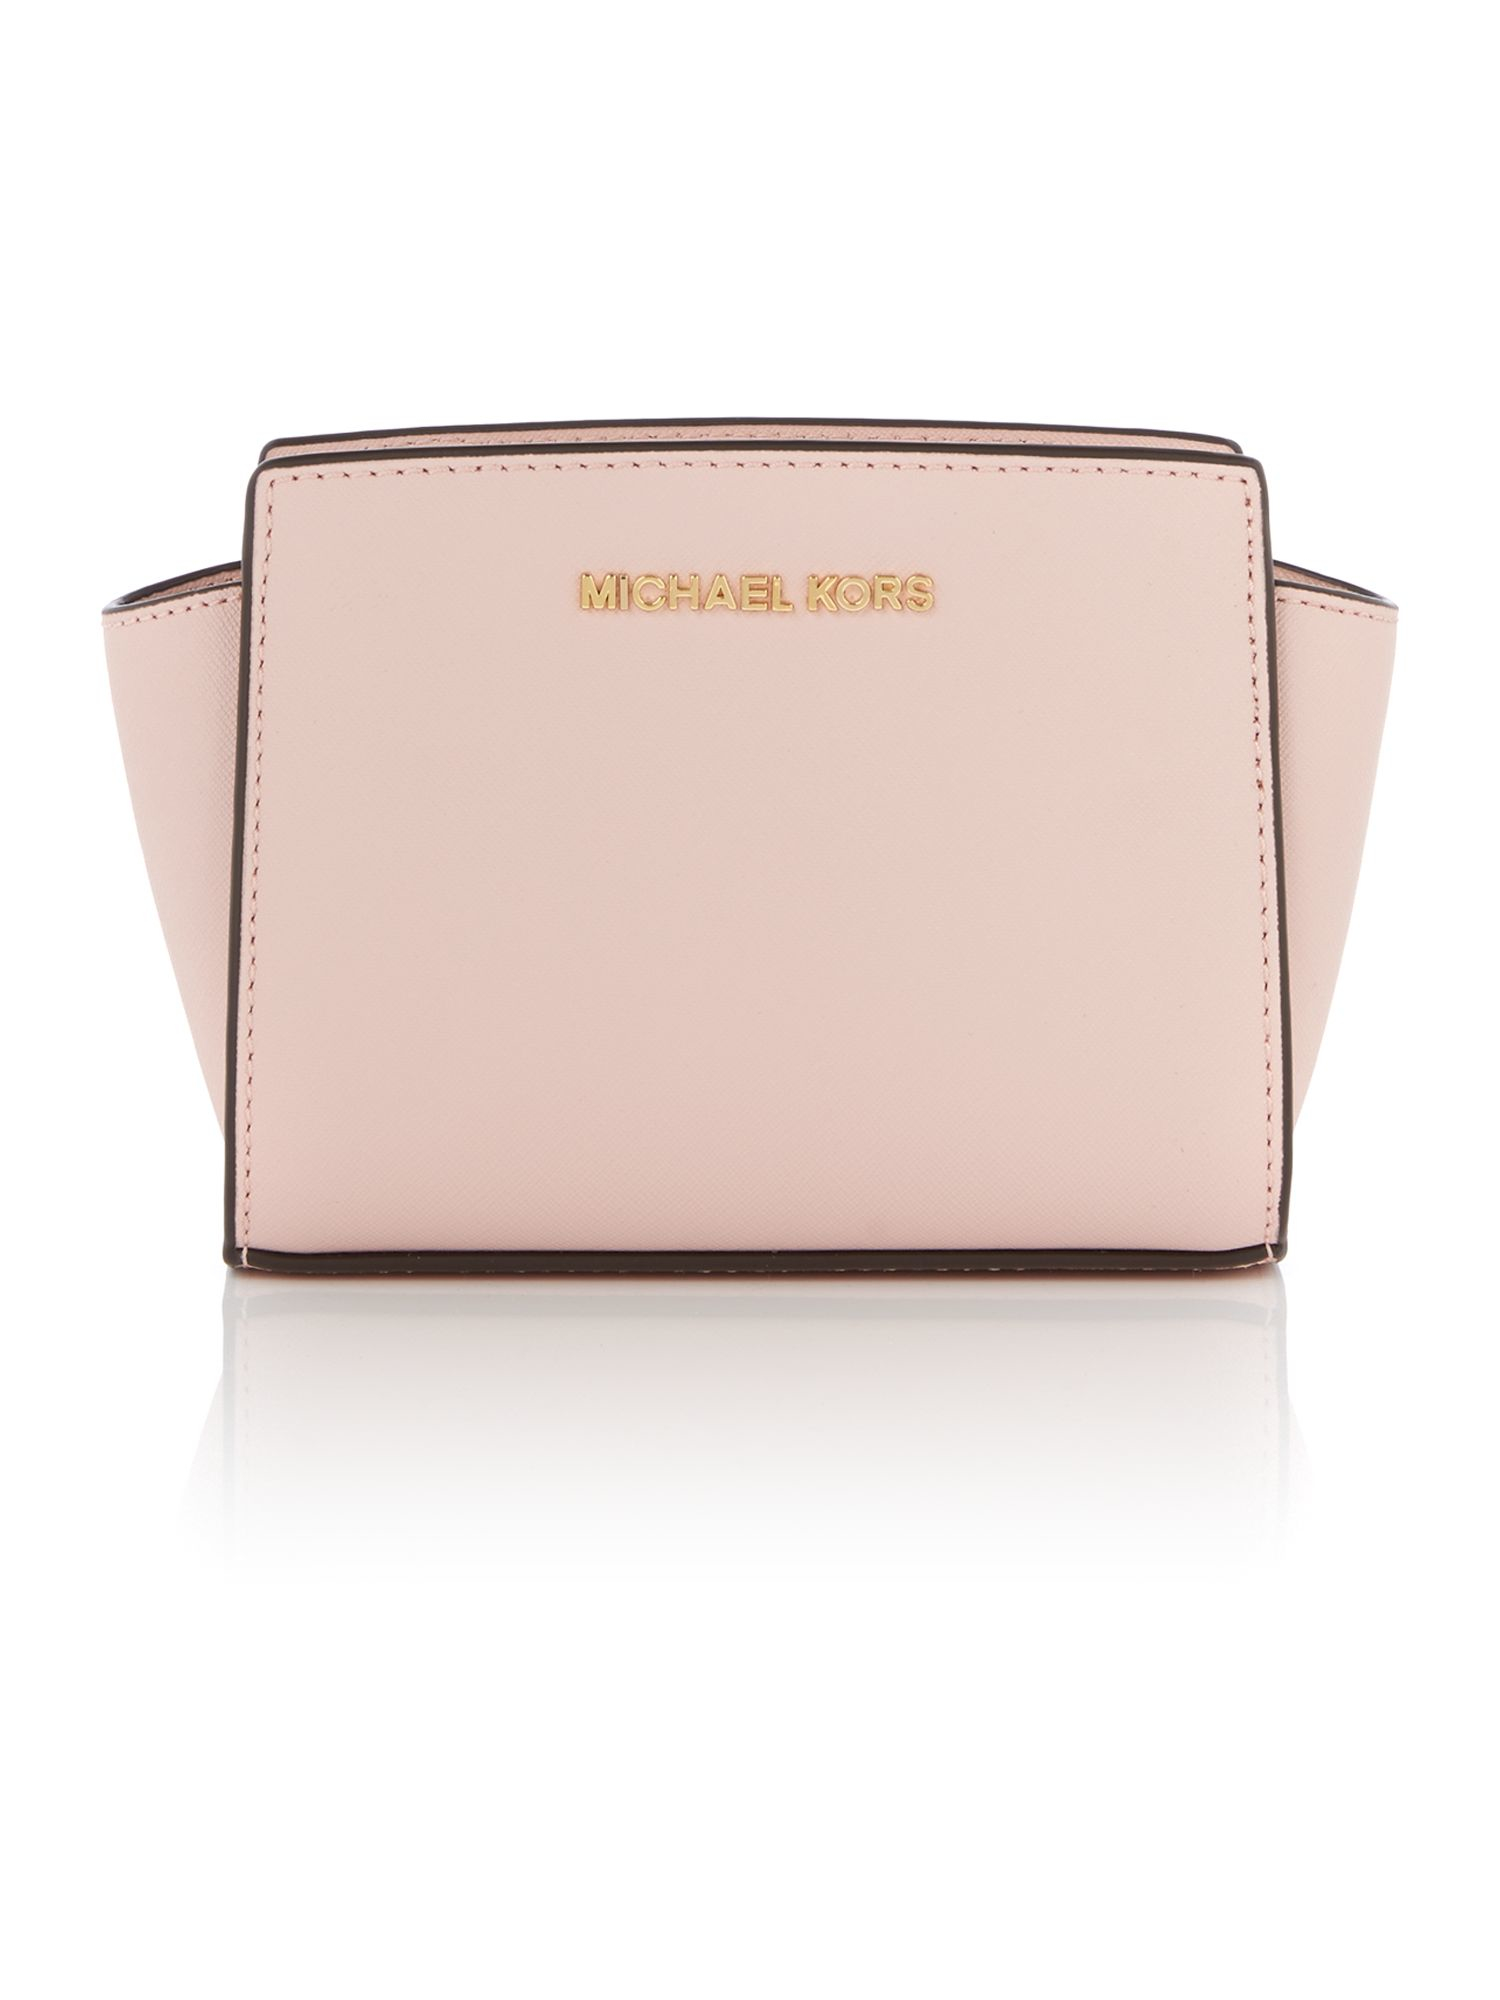 michael kors selma pale pink mini cross body bag in pink lyst. Black Bedroom Furniture Sets. Home Design Ideas